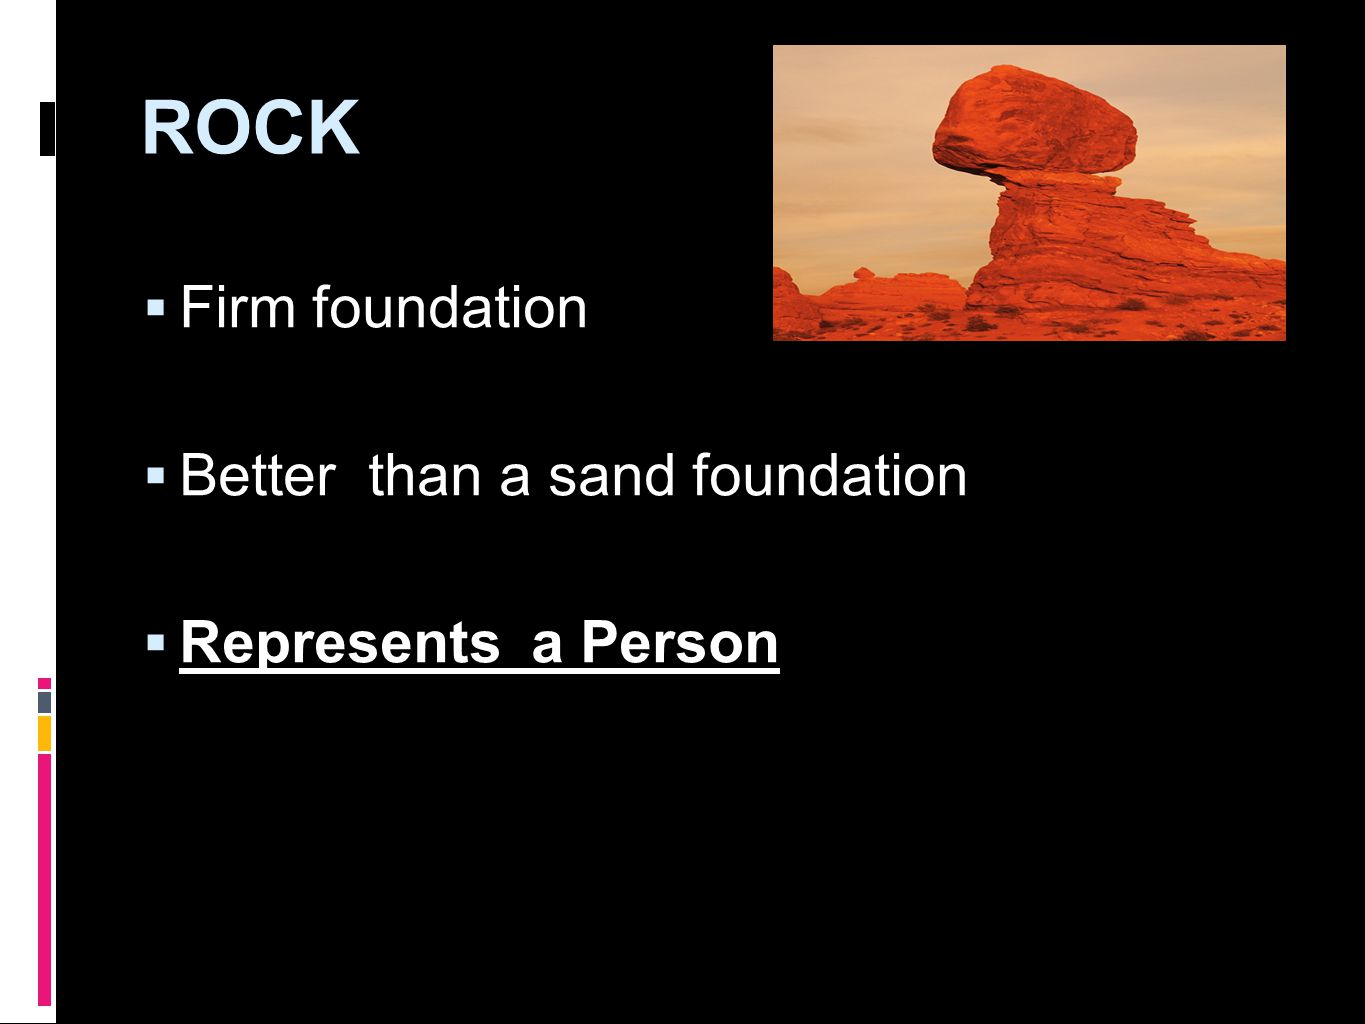  Firm foundation  Better than a sand foundation  Represents a Person